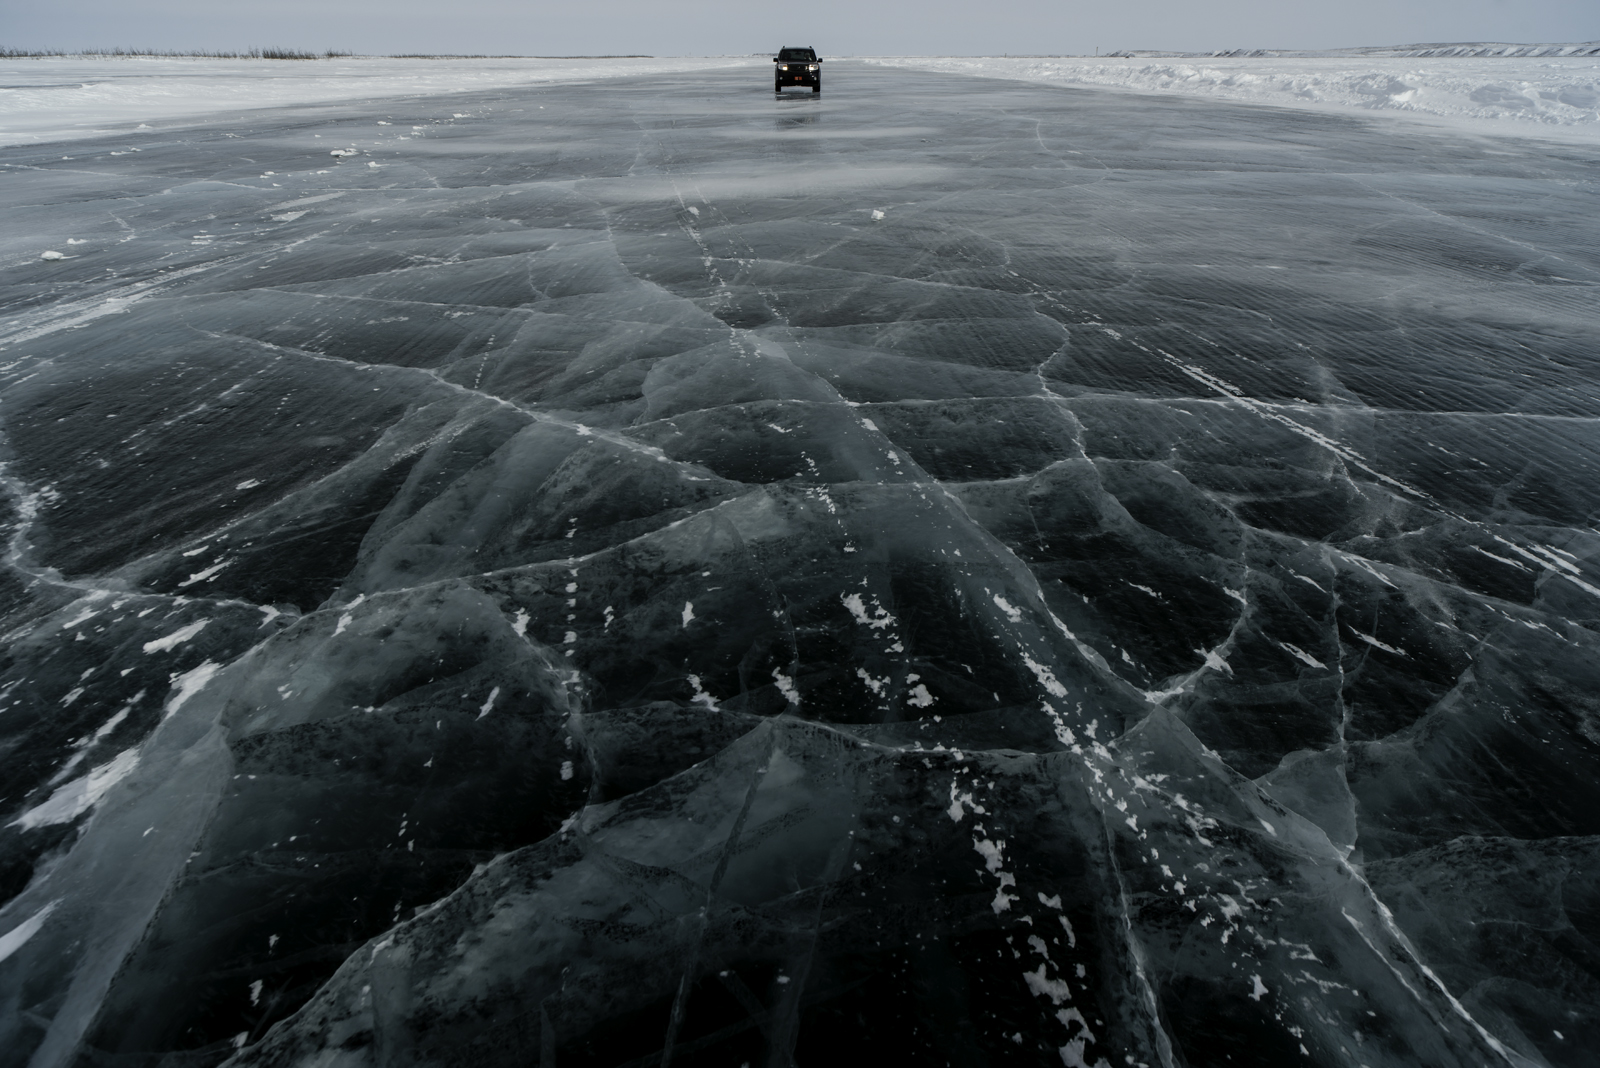 Closer to Tuktoyaktuk, the sea ice is clearer than in Inuvik